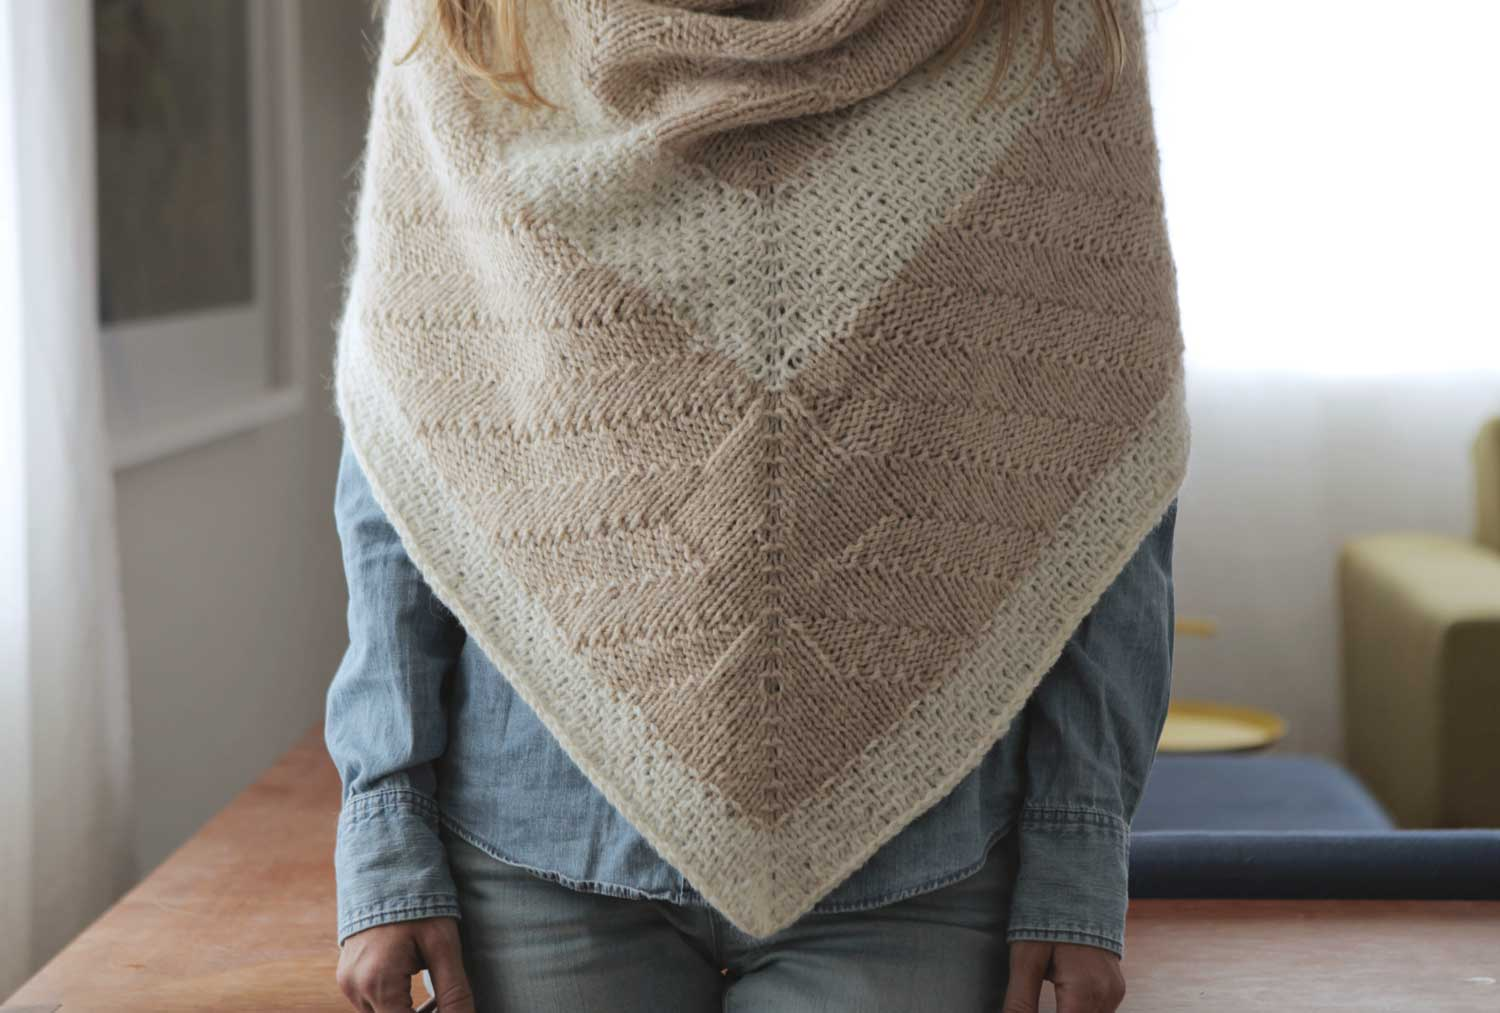 COMPASS Shawl by Shannon Cook #compassshawl #hinterlandstraits